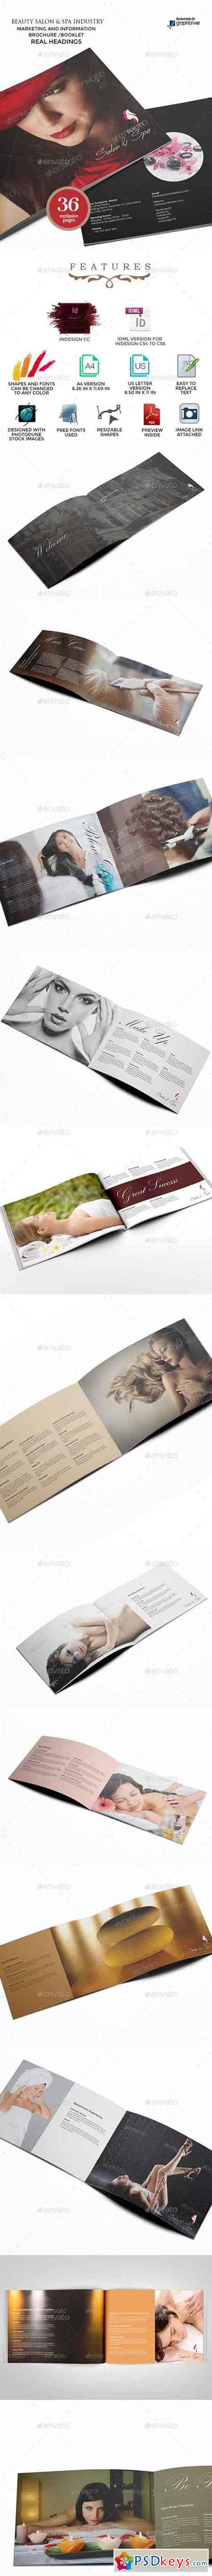 Salon and Spa Service Information Brochure 9641249